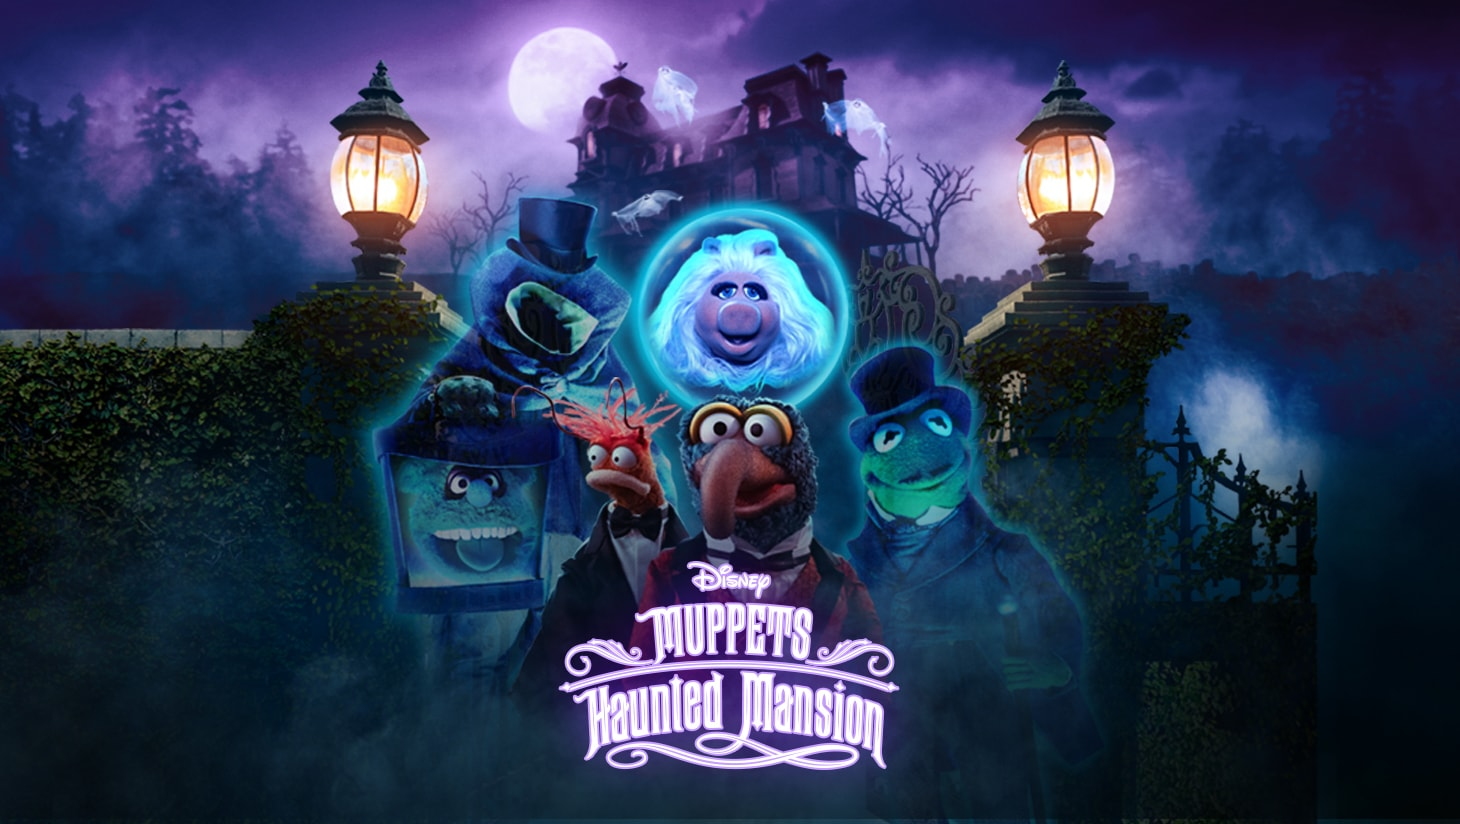 Muppets Haunted Mansion keyart featuring Kermit the Frog, Miss Piggy, Gonzo, and Pepe the King Prawn